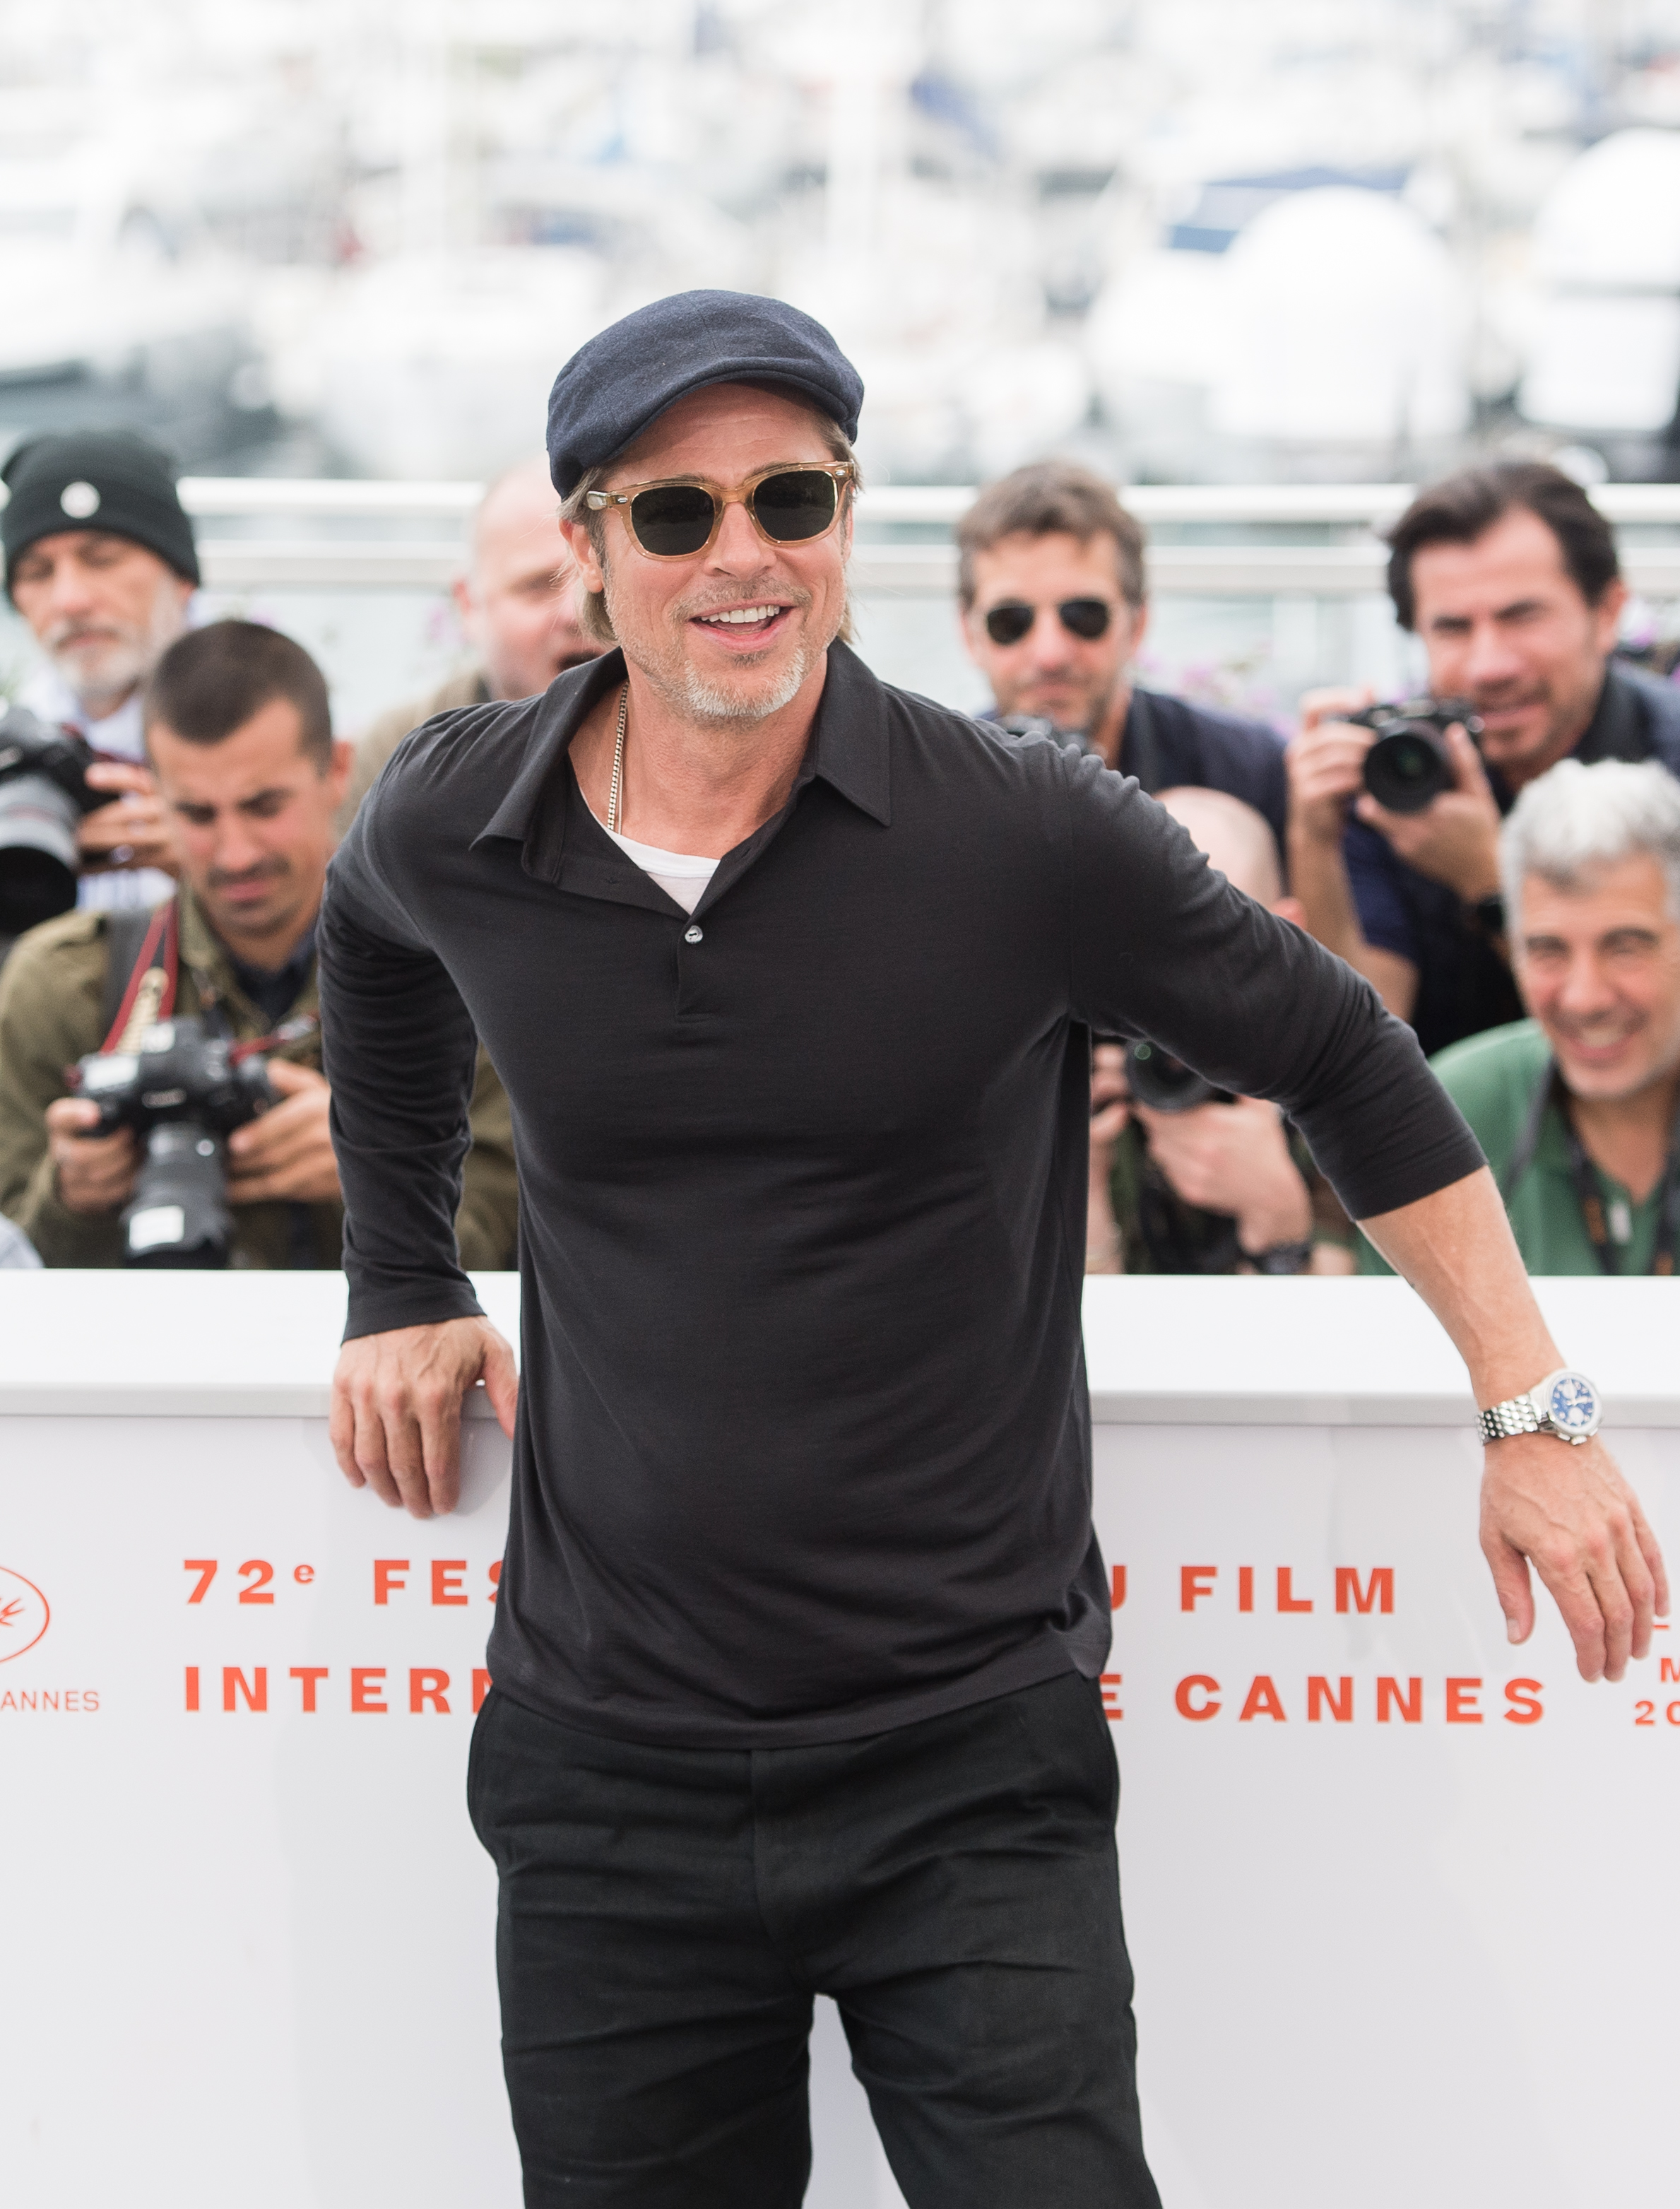 Brad Pitt Hits the Venice Biennale on the Way Back From Cannes + Other Stories